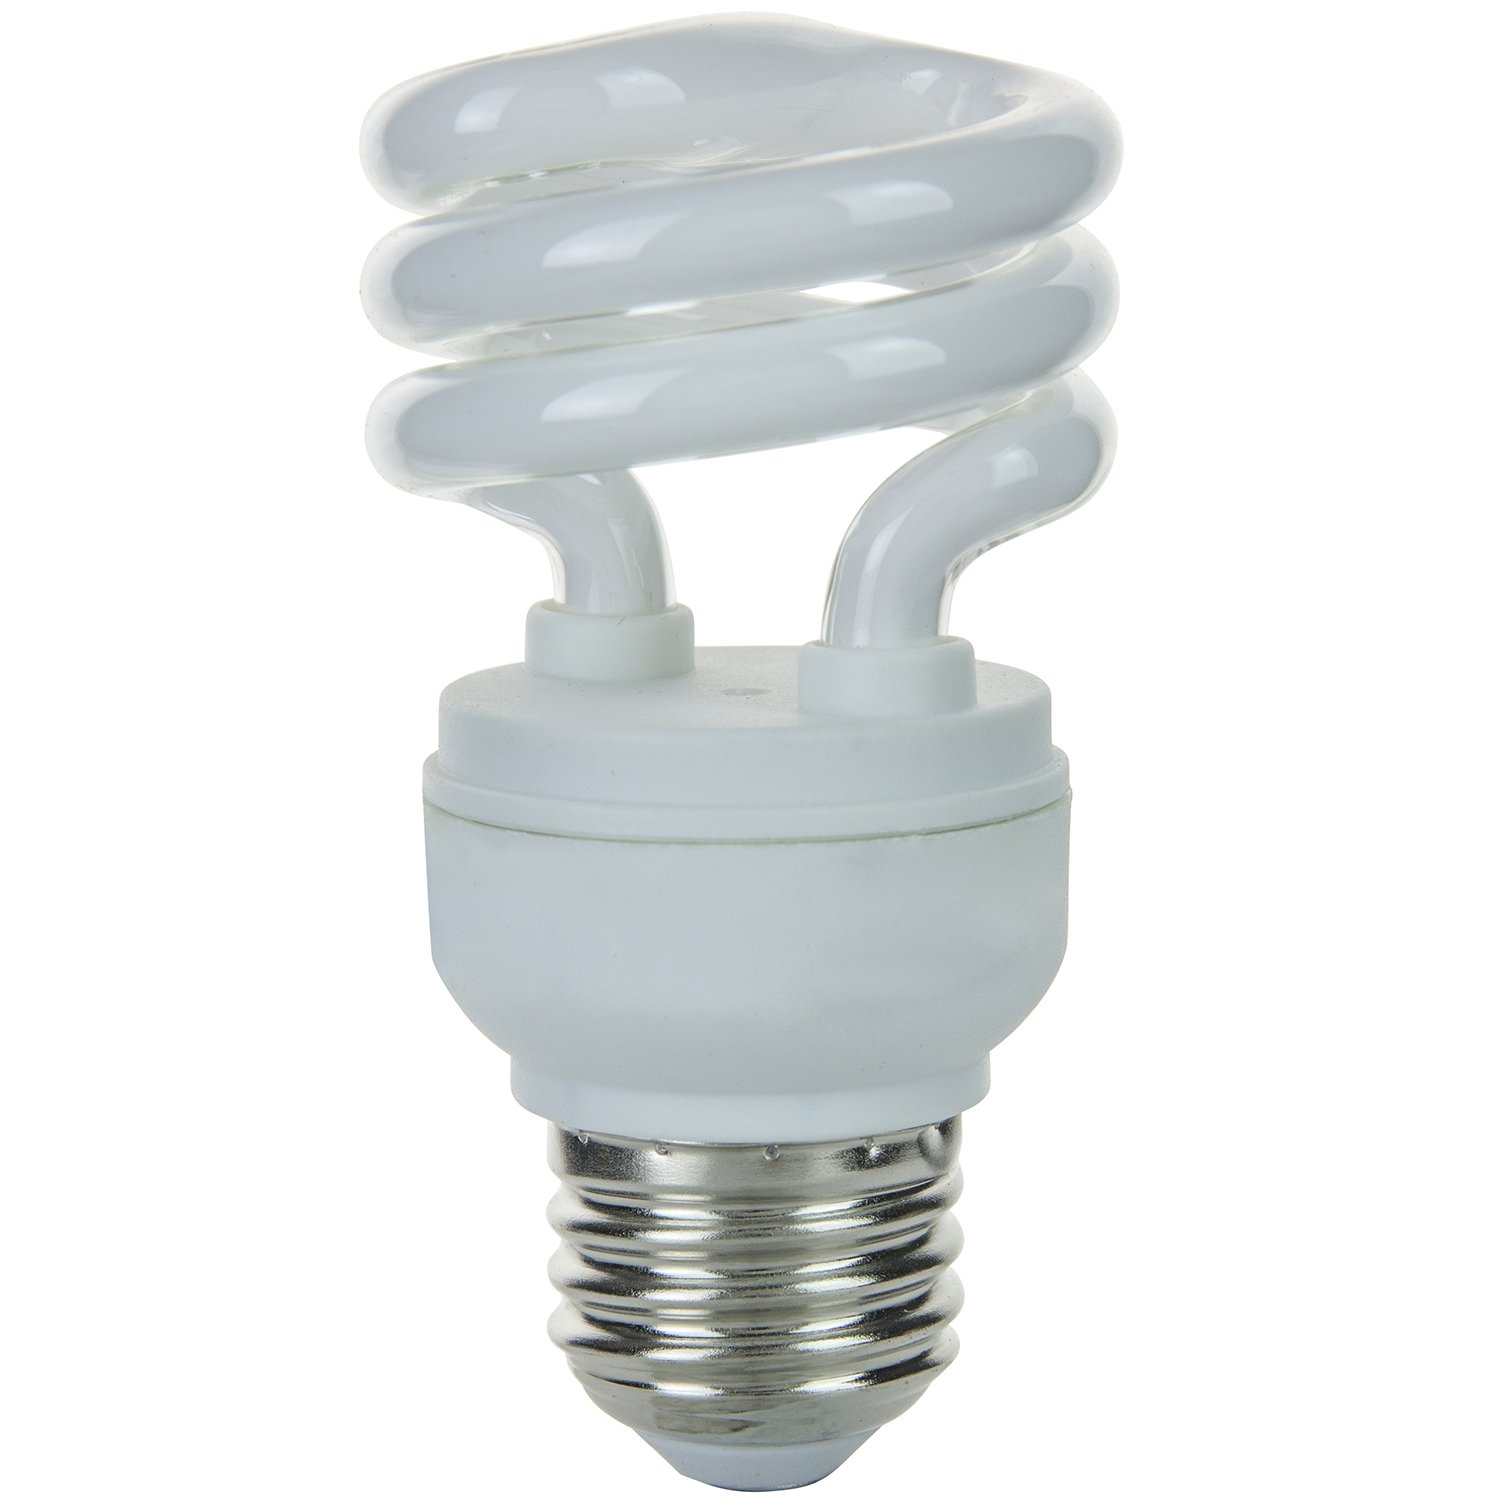 Sunlite SMS9/41K 9-watt T2 Super Mini Spiral CFL Light Bulb, Medium E26 Base, Cool White